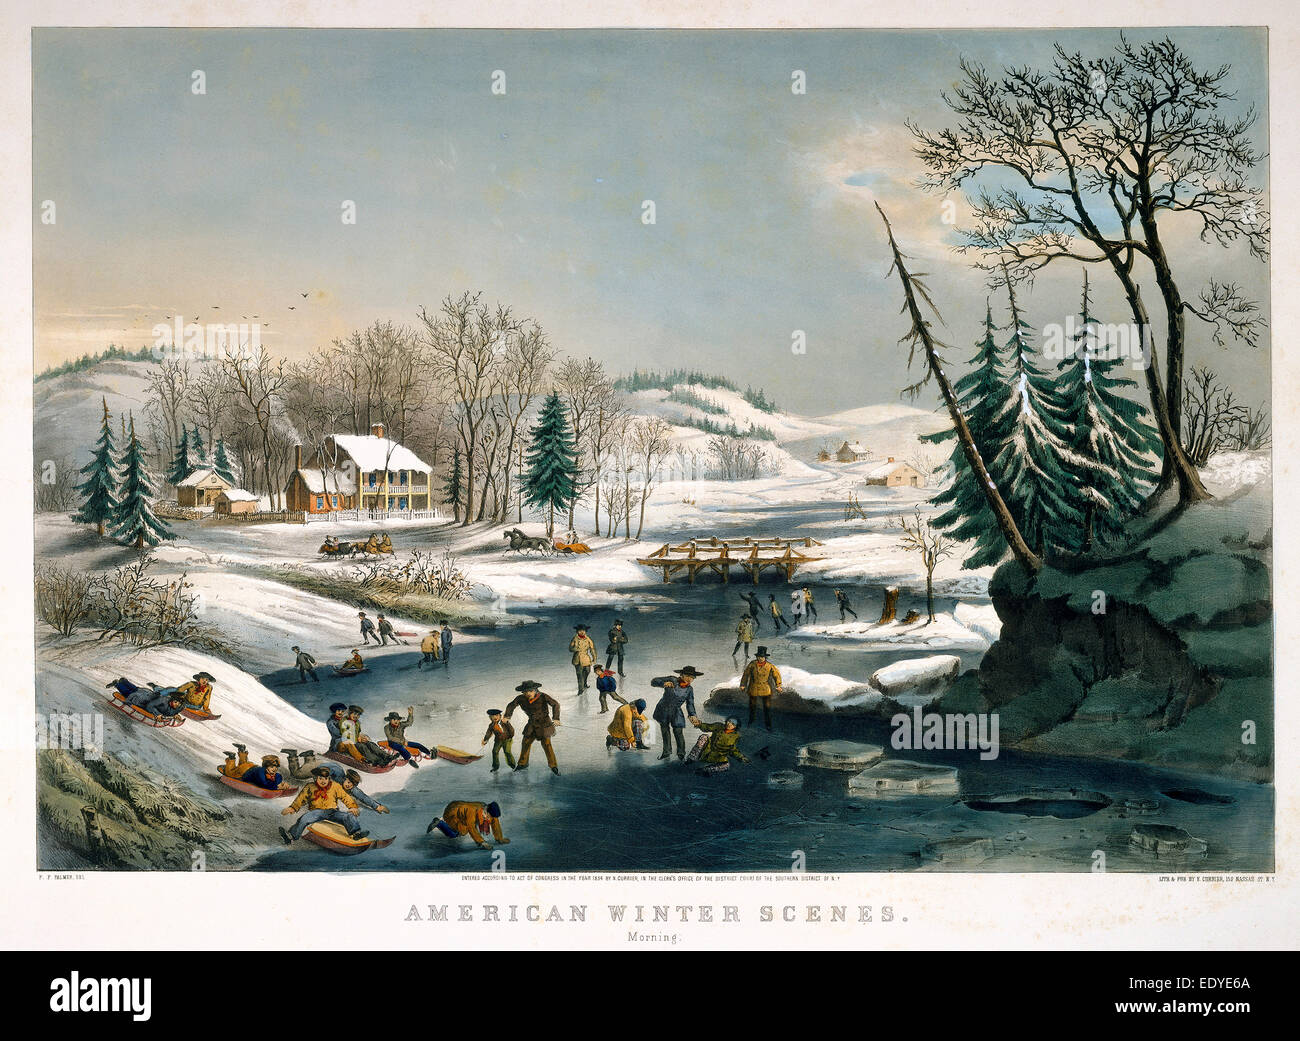 Frances Flora Bond Palmer and Nathaniel Currier (publisher), American Winter Scenes: Morning, American, born England - Stock Image